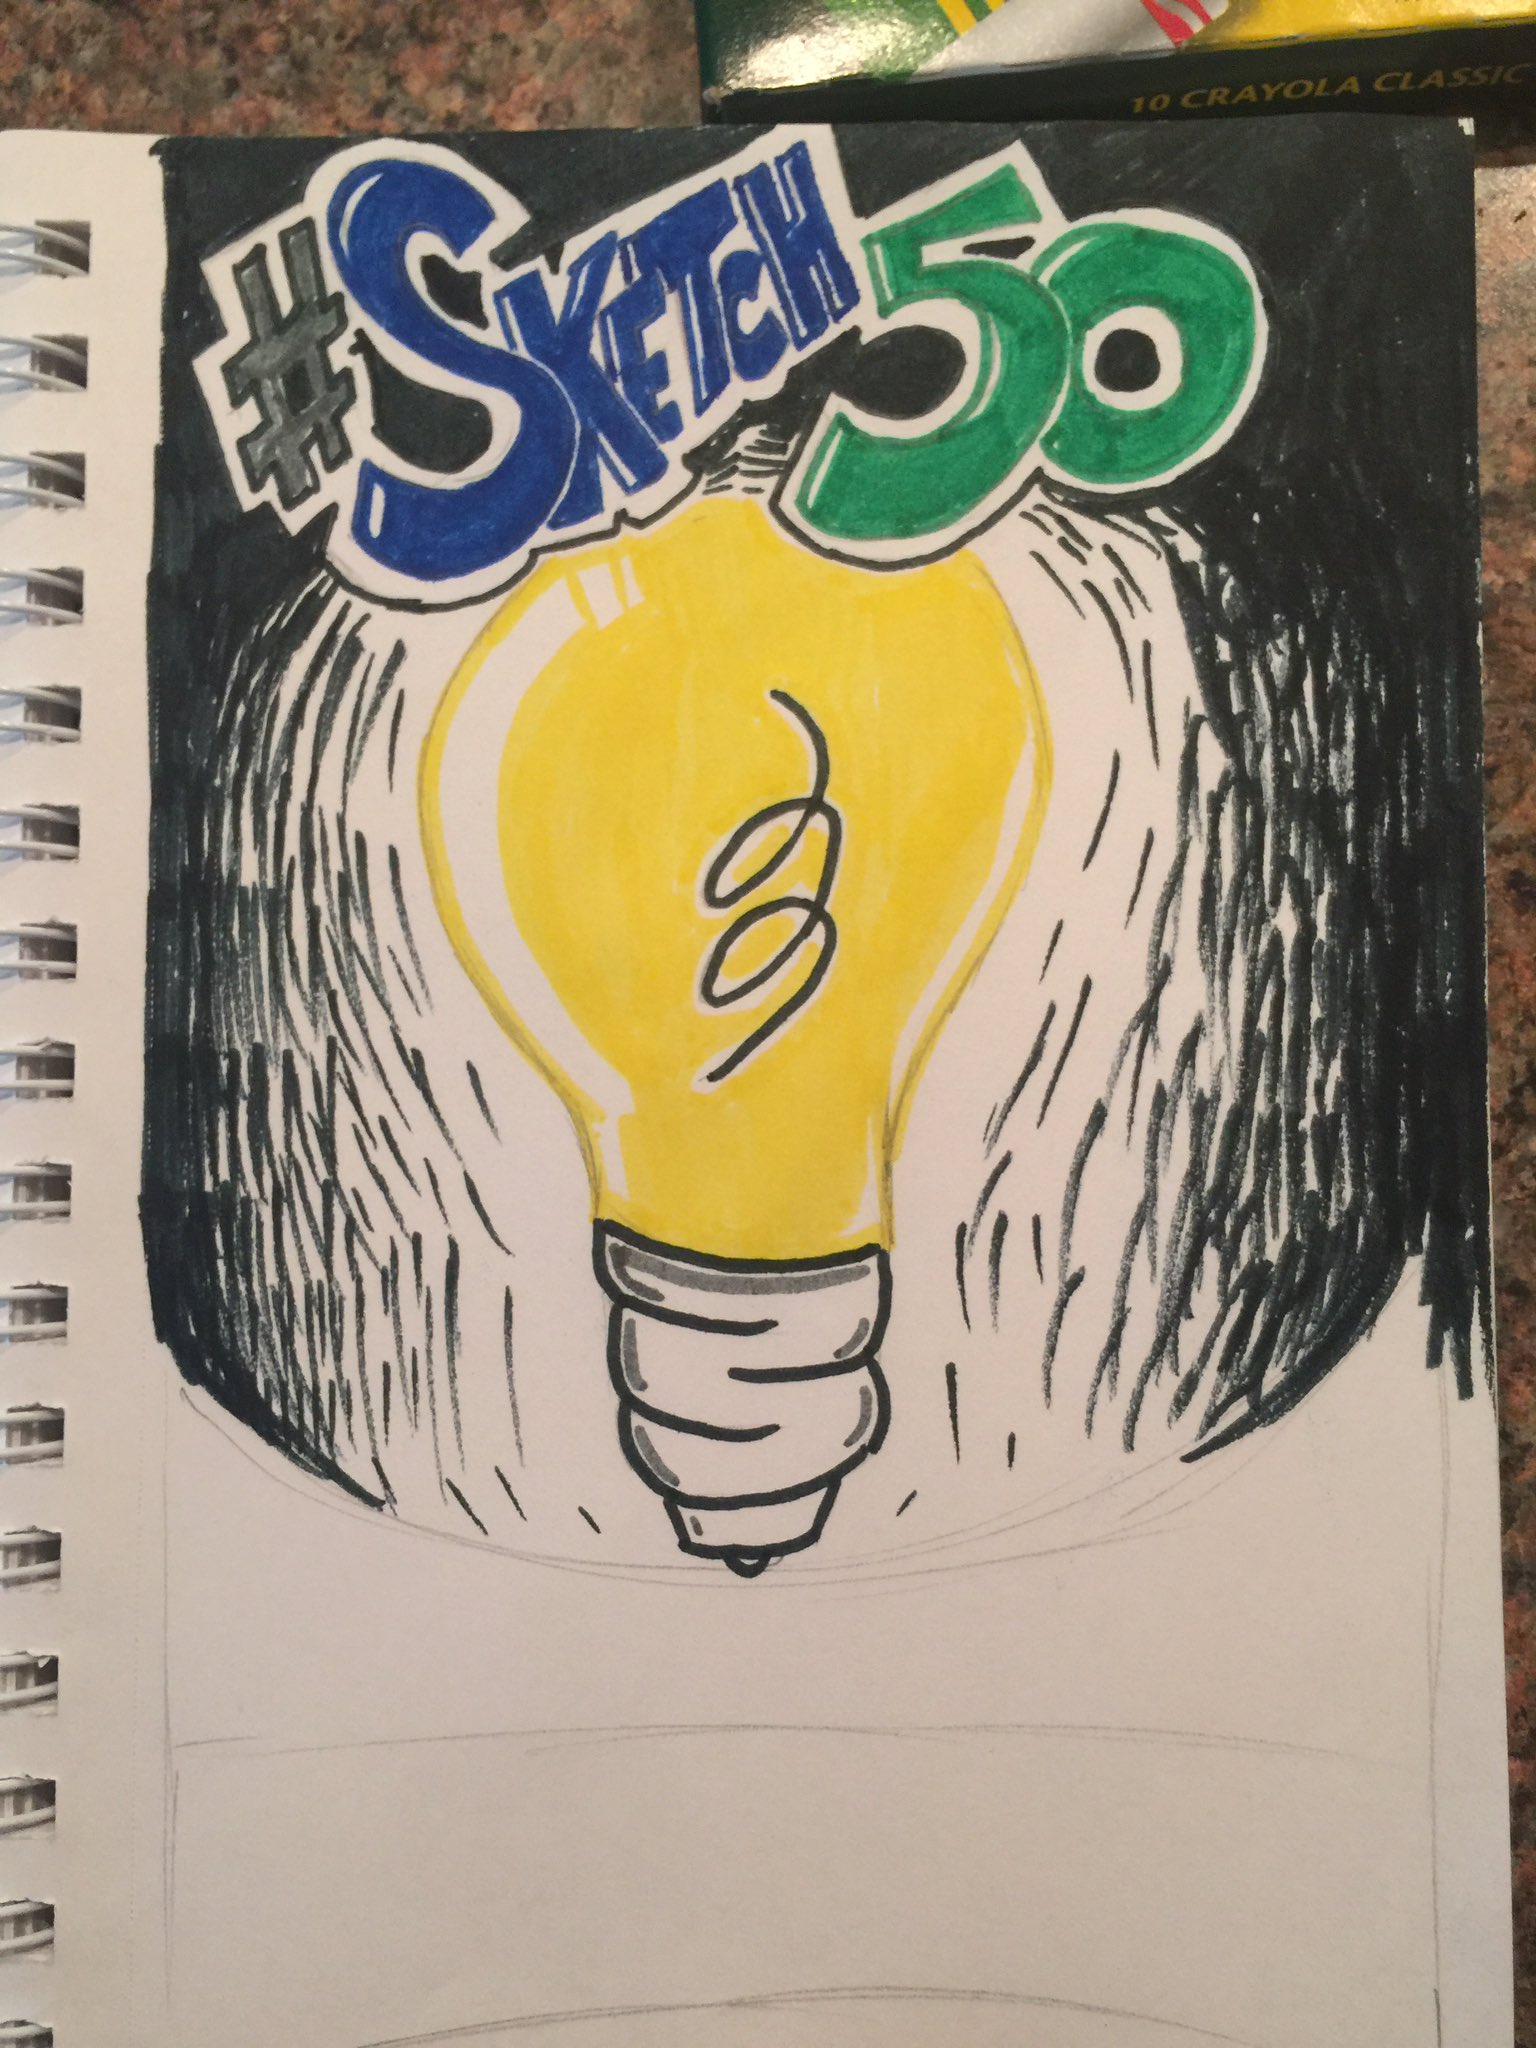 @NavarroMiddle Introducing art students to #sketch50  tomorrow.  1. Lightbulb...communication! https://t.co/iwQkV3wjfP